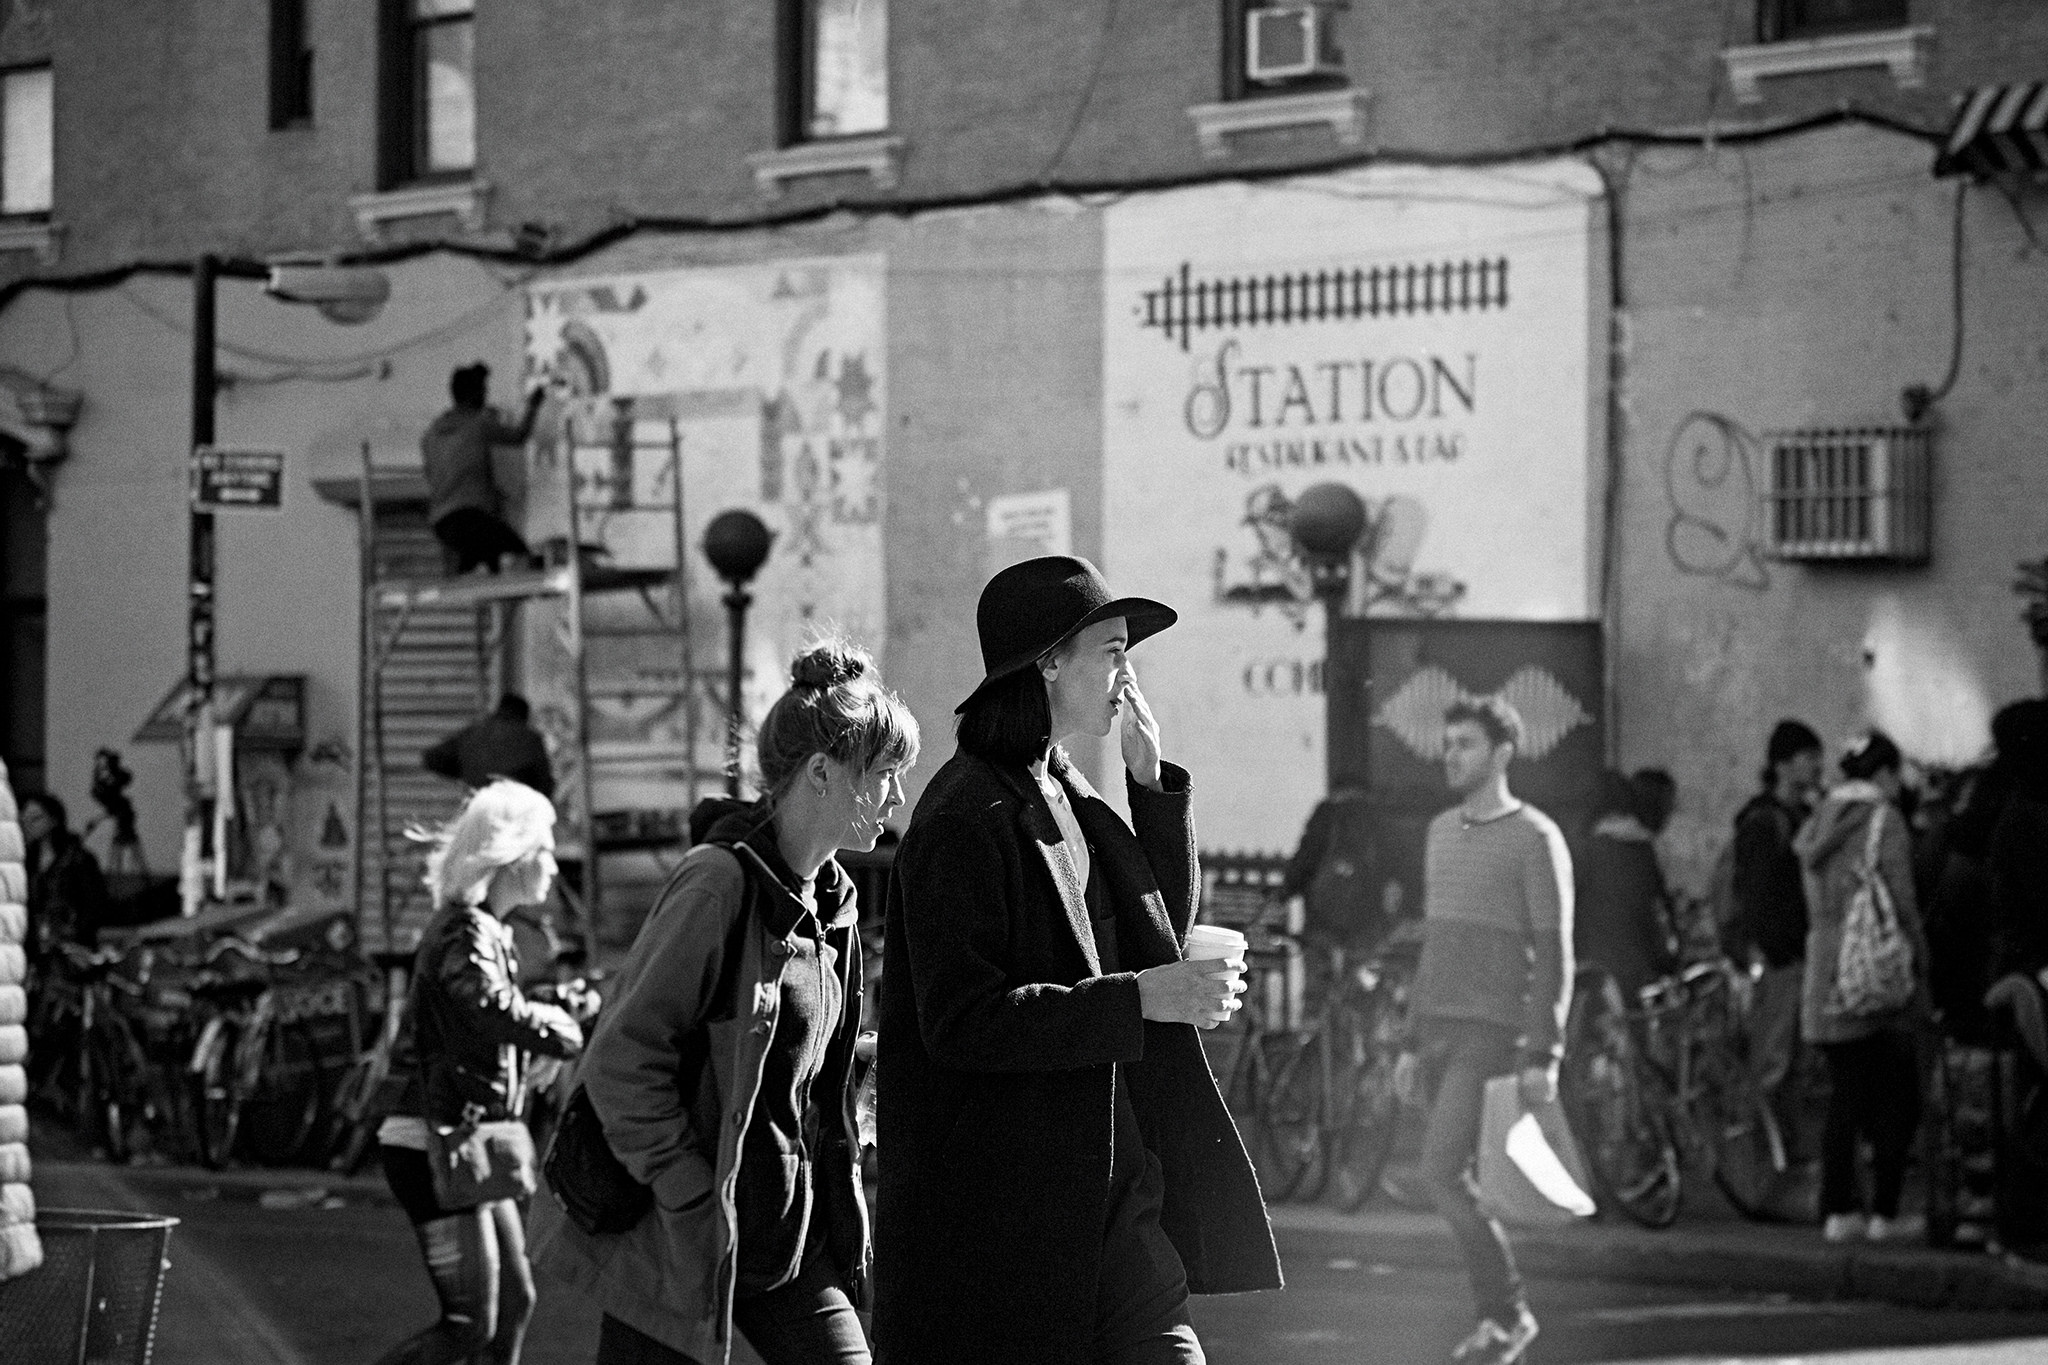 Hipsters in Bed-Stuy. Photo by Yun-Ying Wu, via Flickr creative commons.